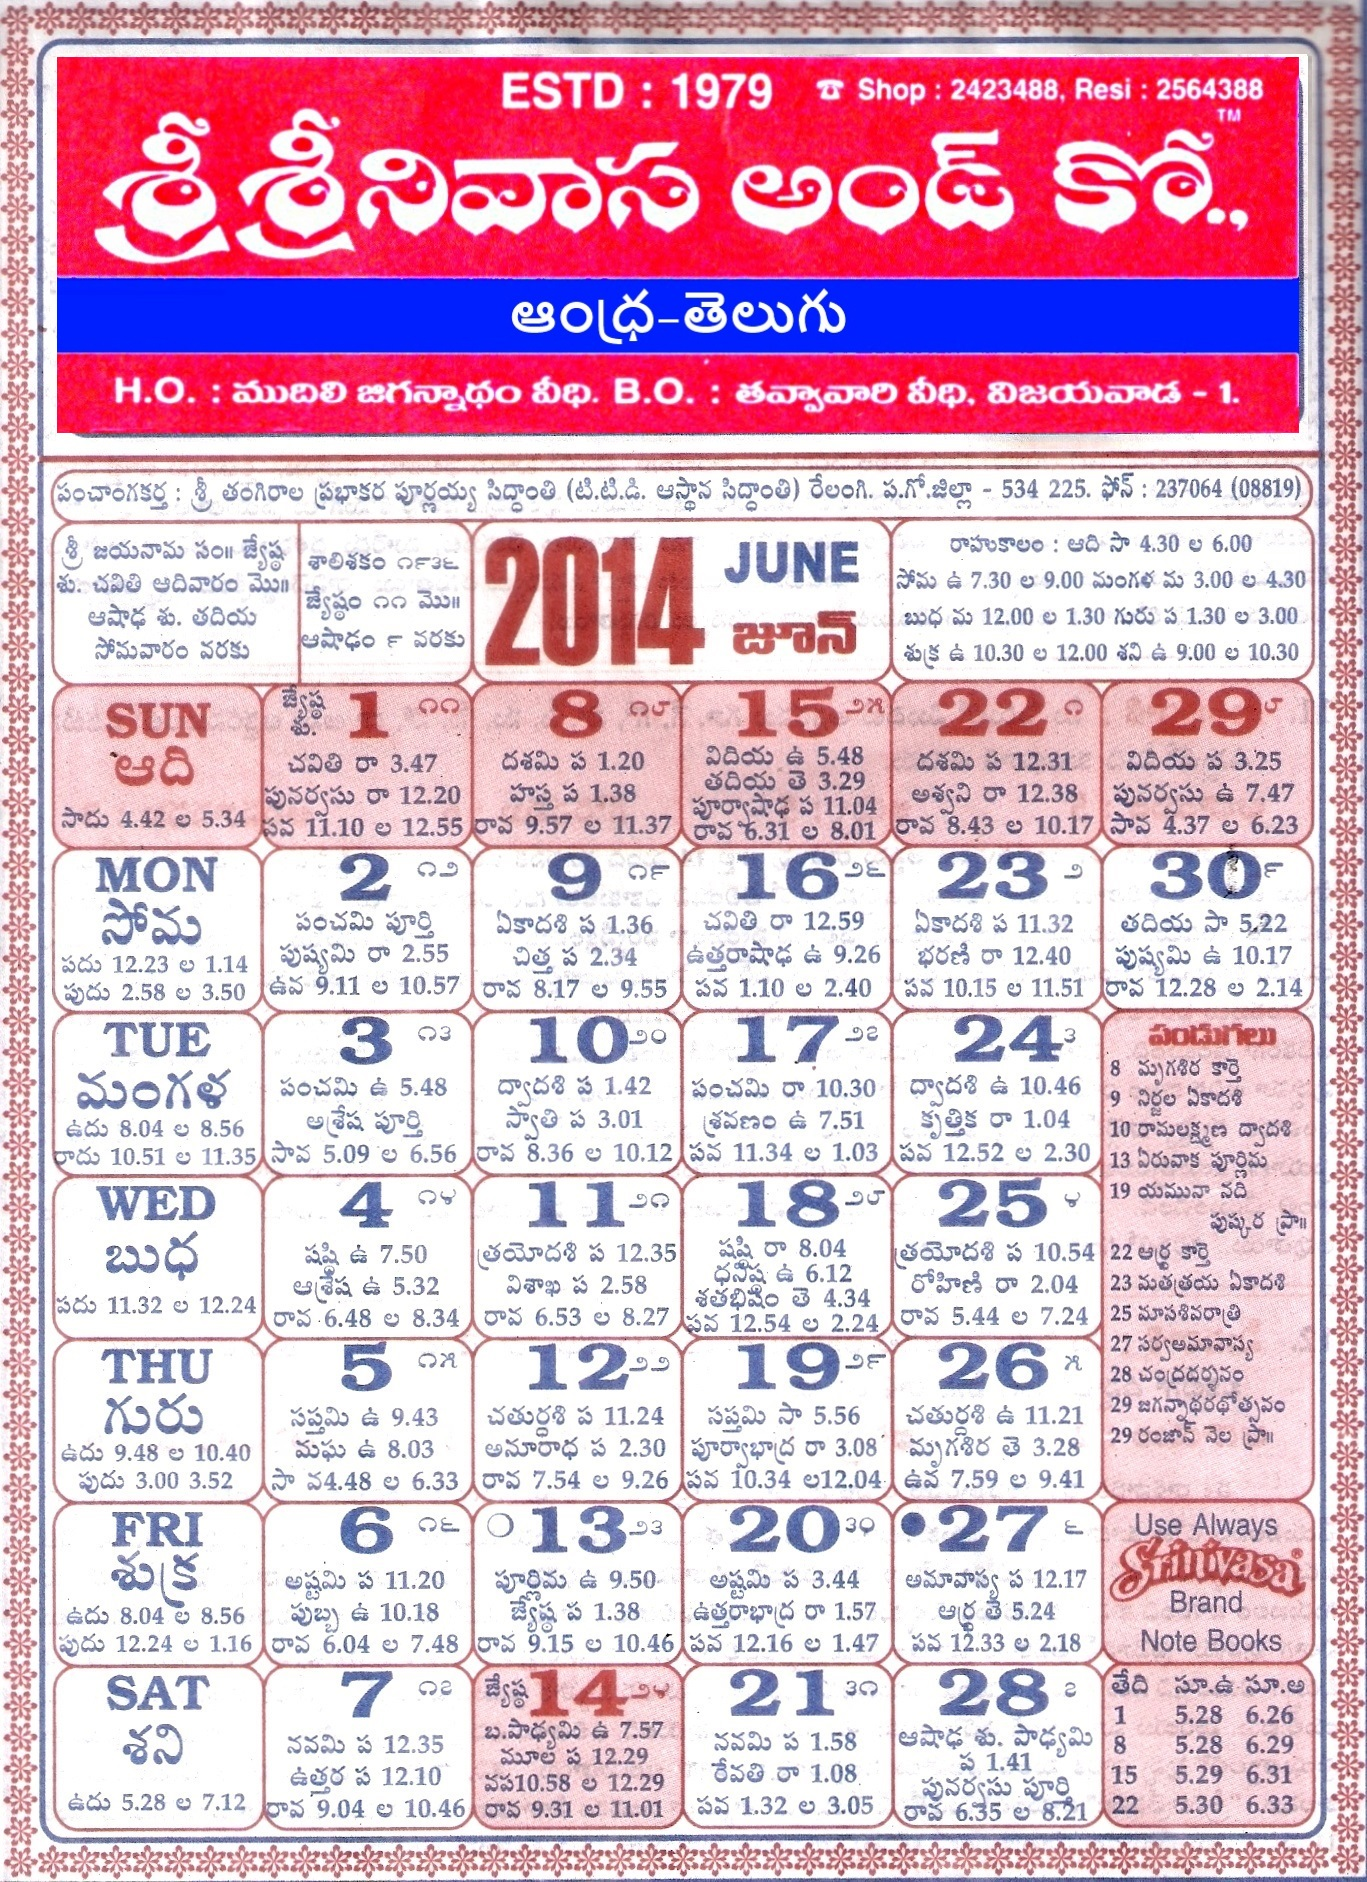 Years panchangam for the world for years